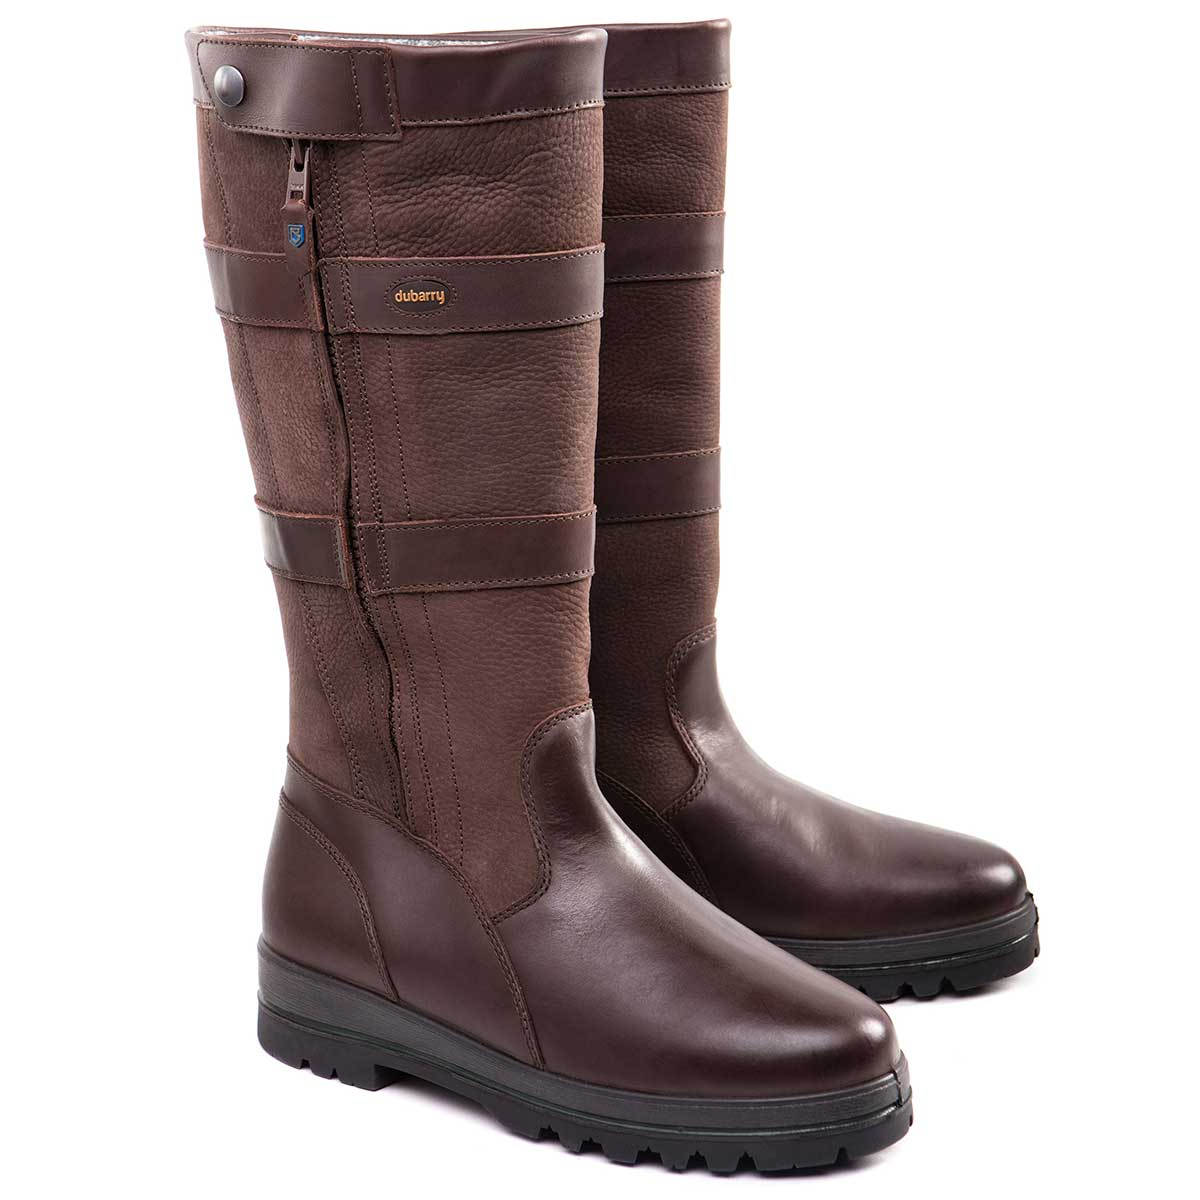 Dubarry Wexford Boots Foxholes Country Pursuits